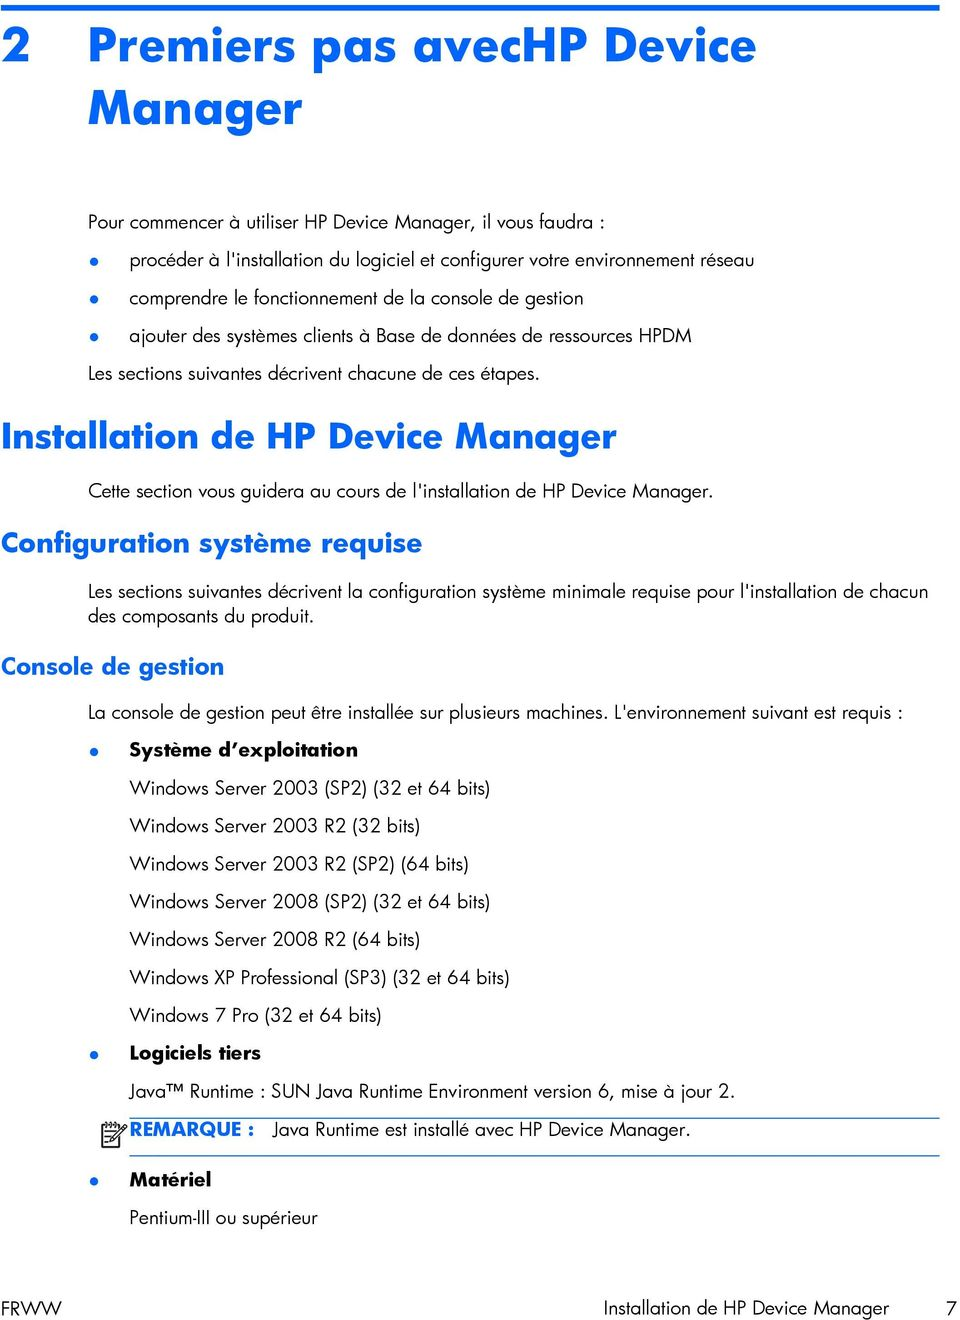 Installation de HP Device Manager Cette section vous guidera au cours de l'installation de HP Device Manager.